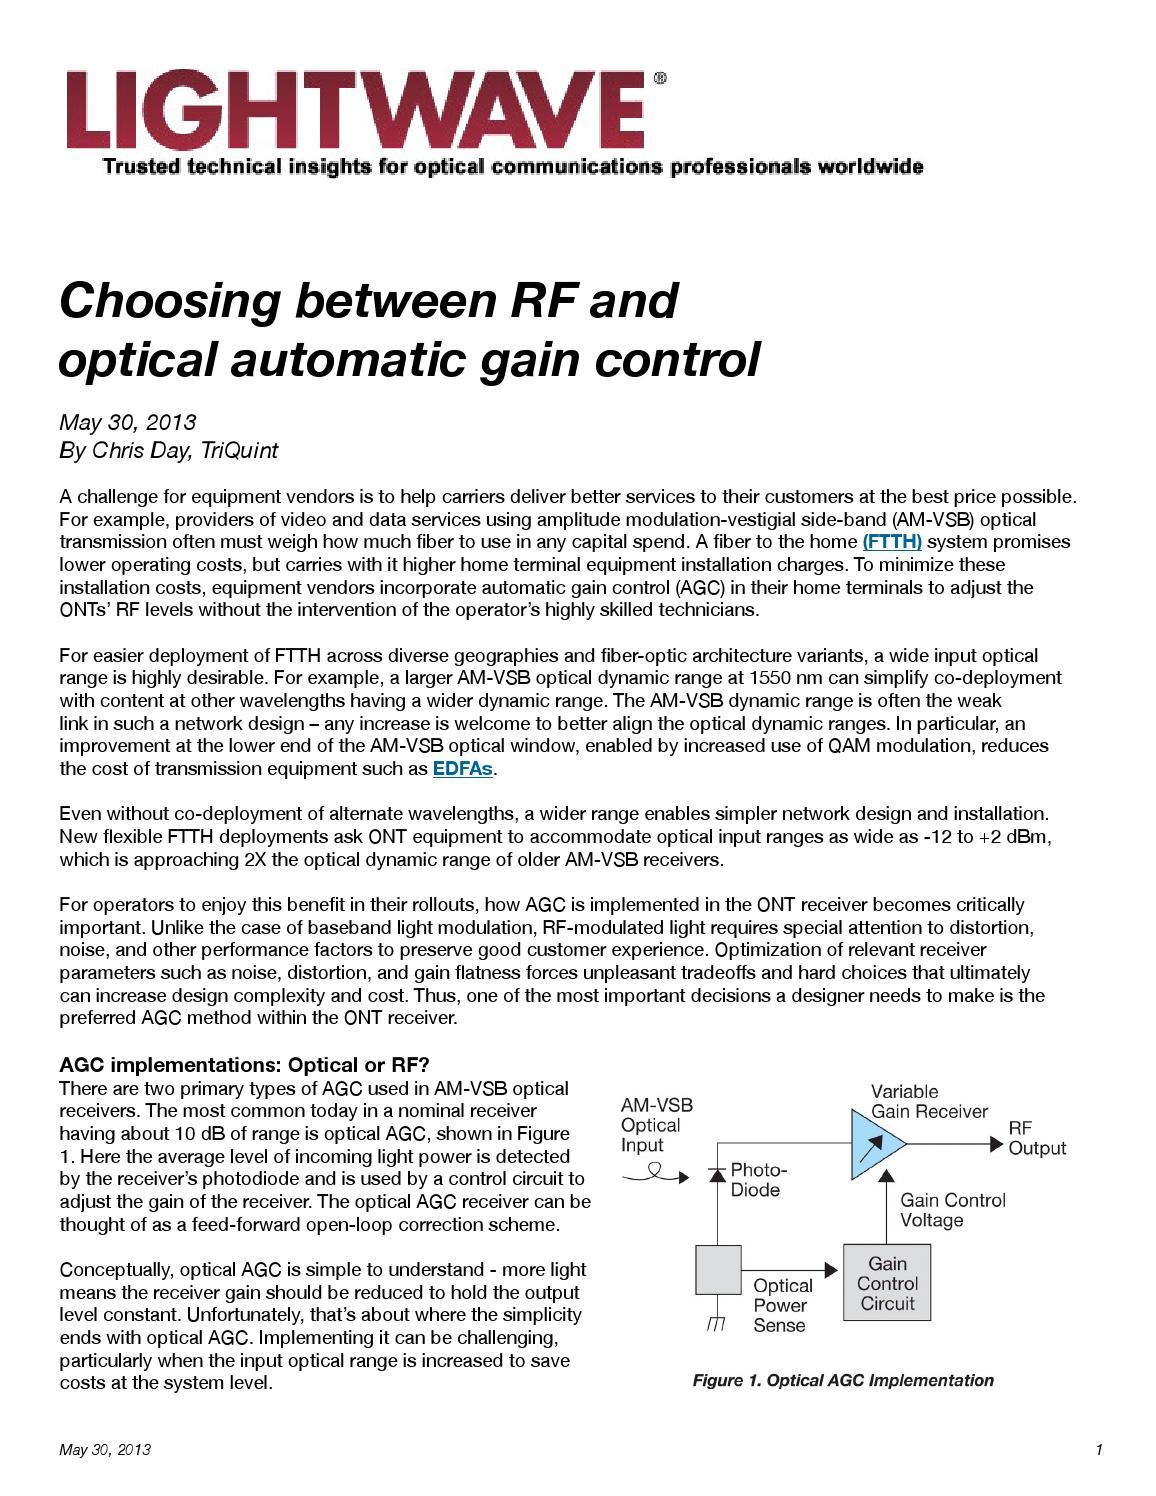 Choosing Between RF and Optical AGC for your Cable Design by Mark